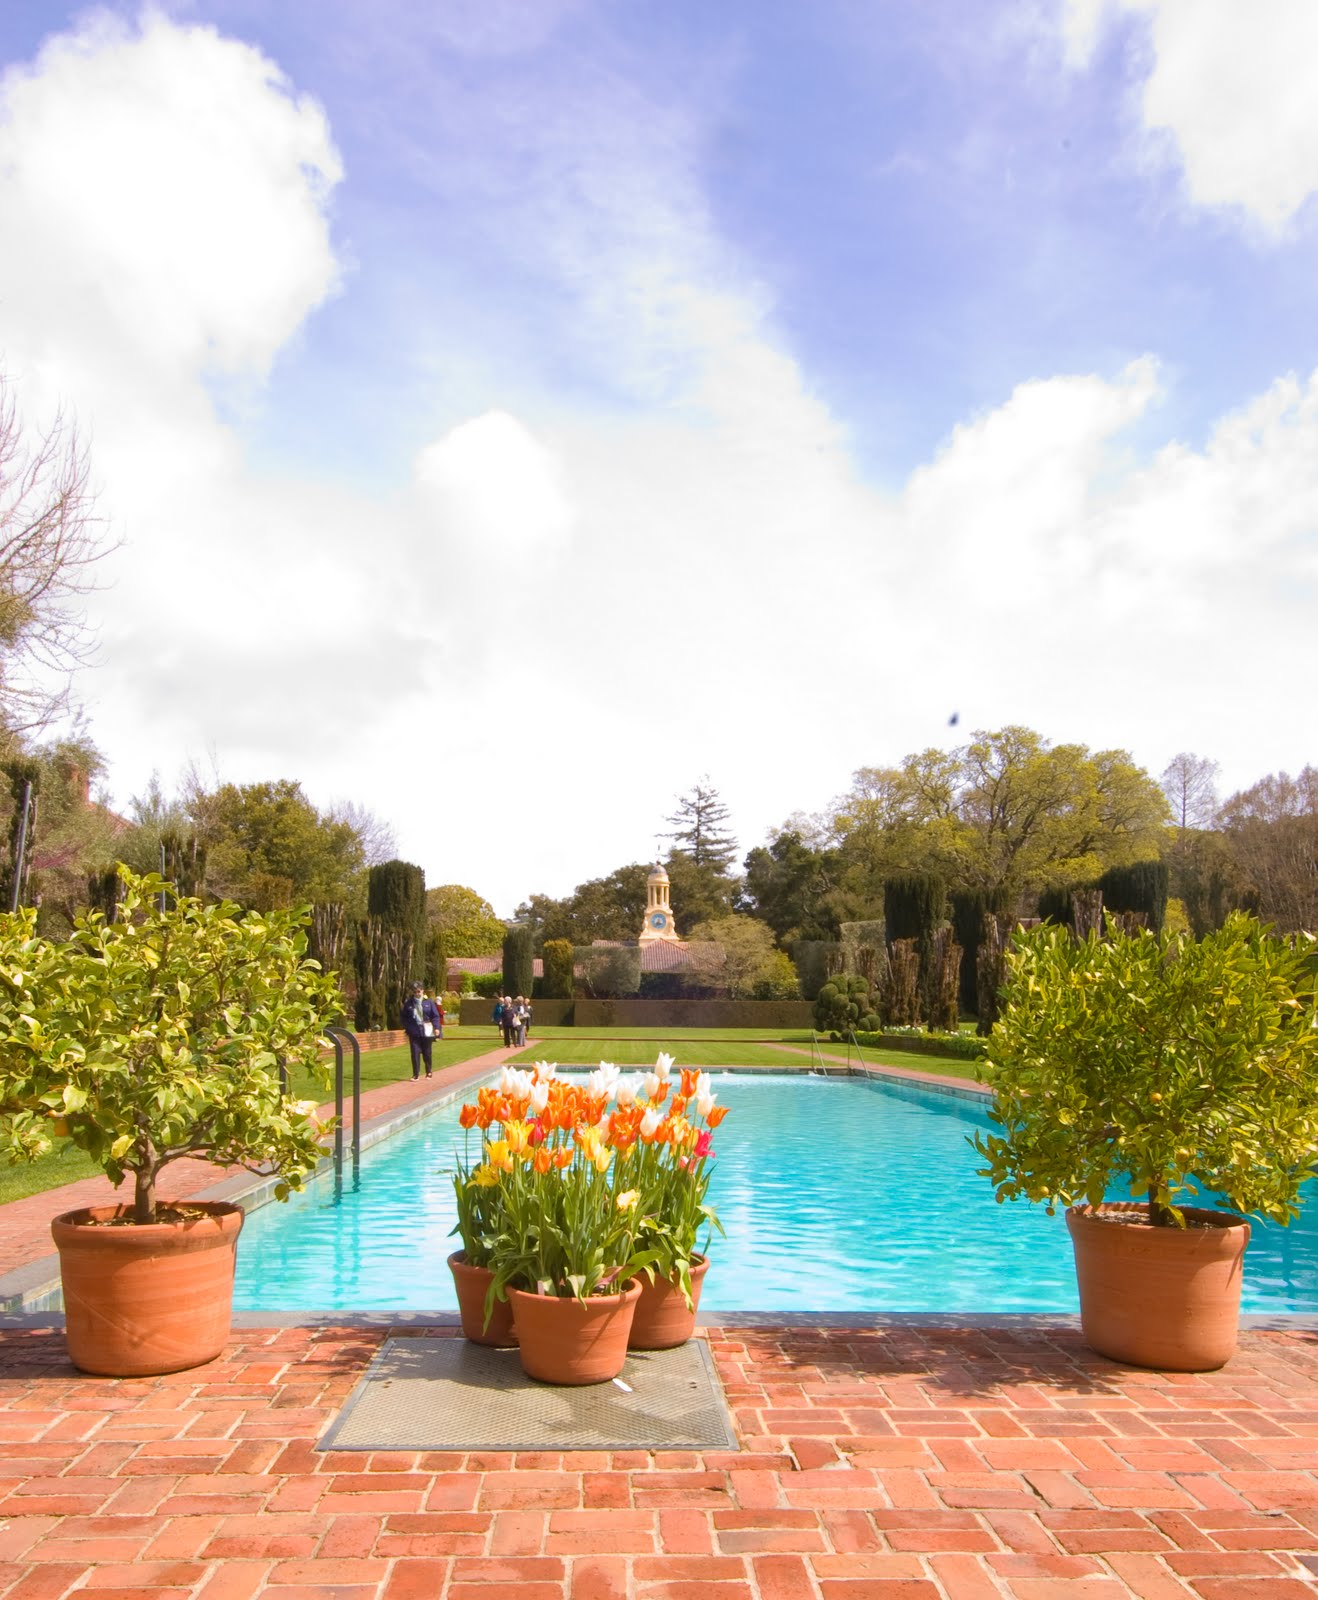 Chic provence for une petite pause early spring at for Filoli garden pool